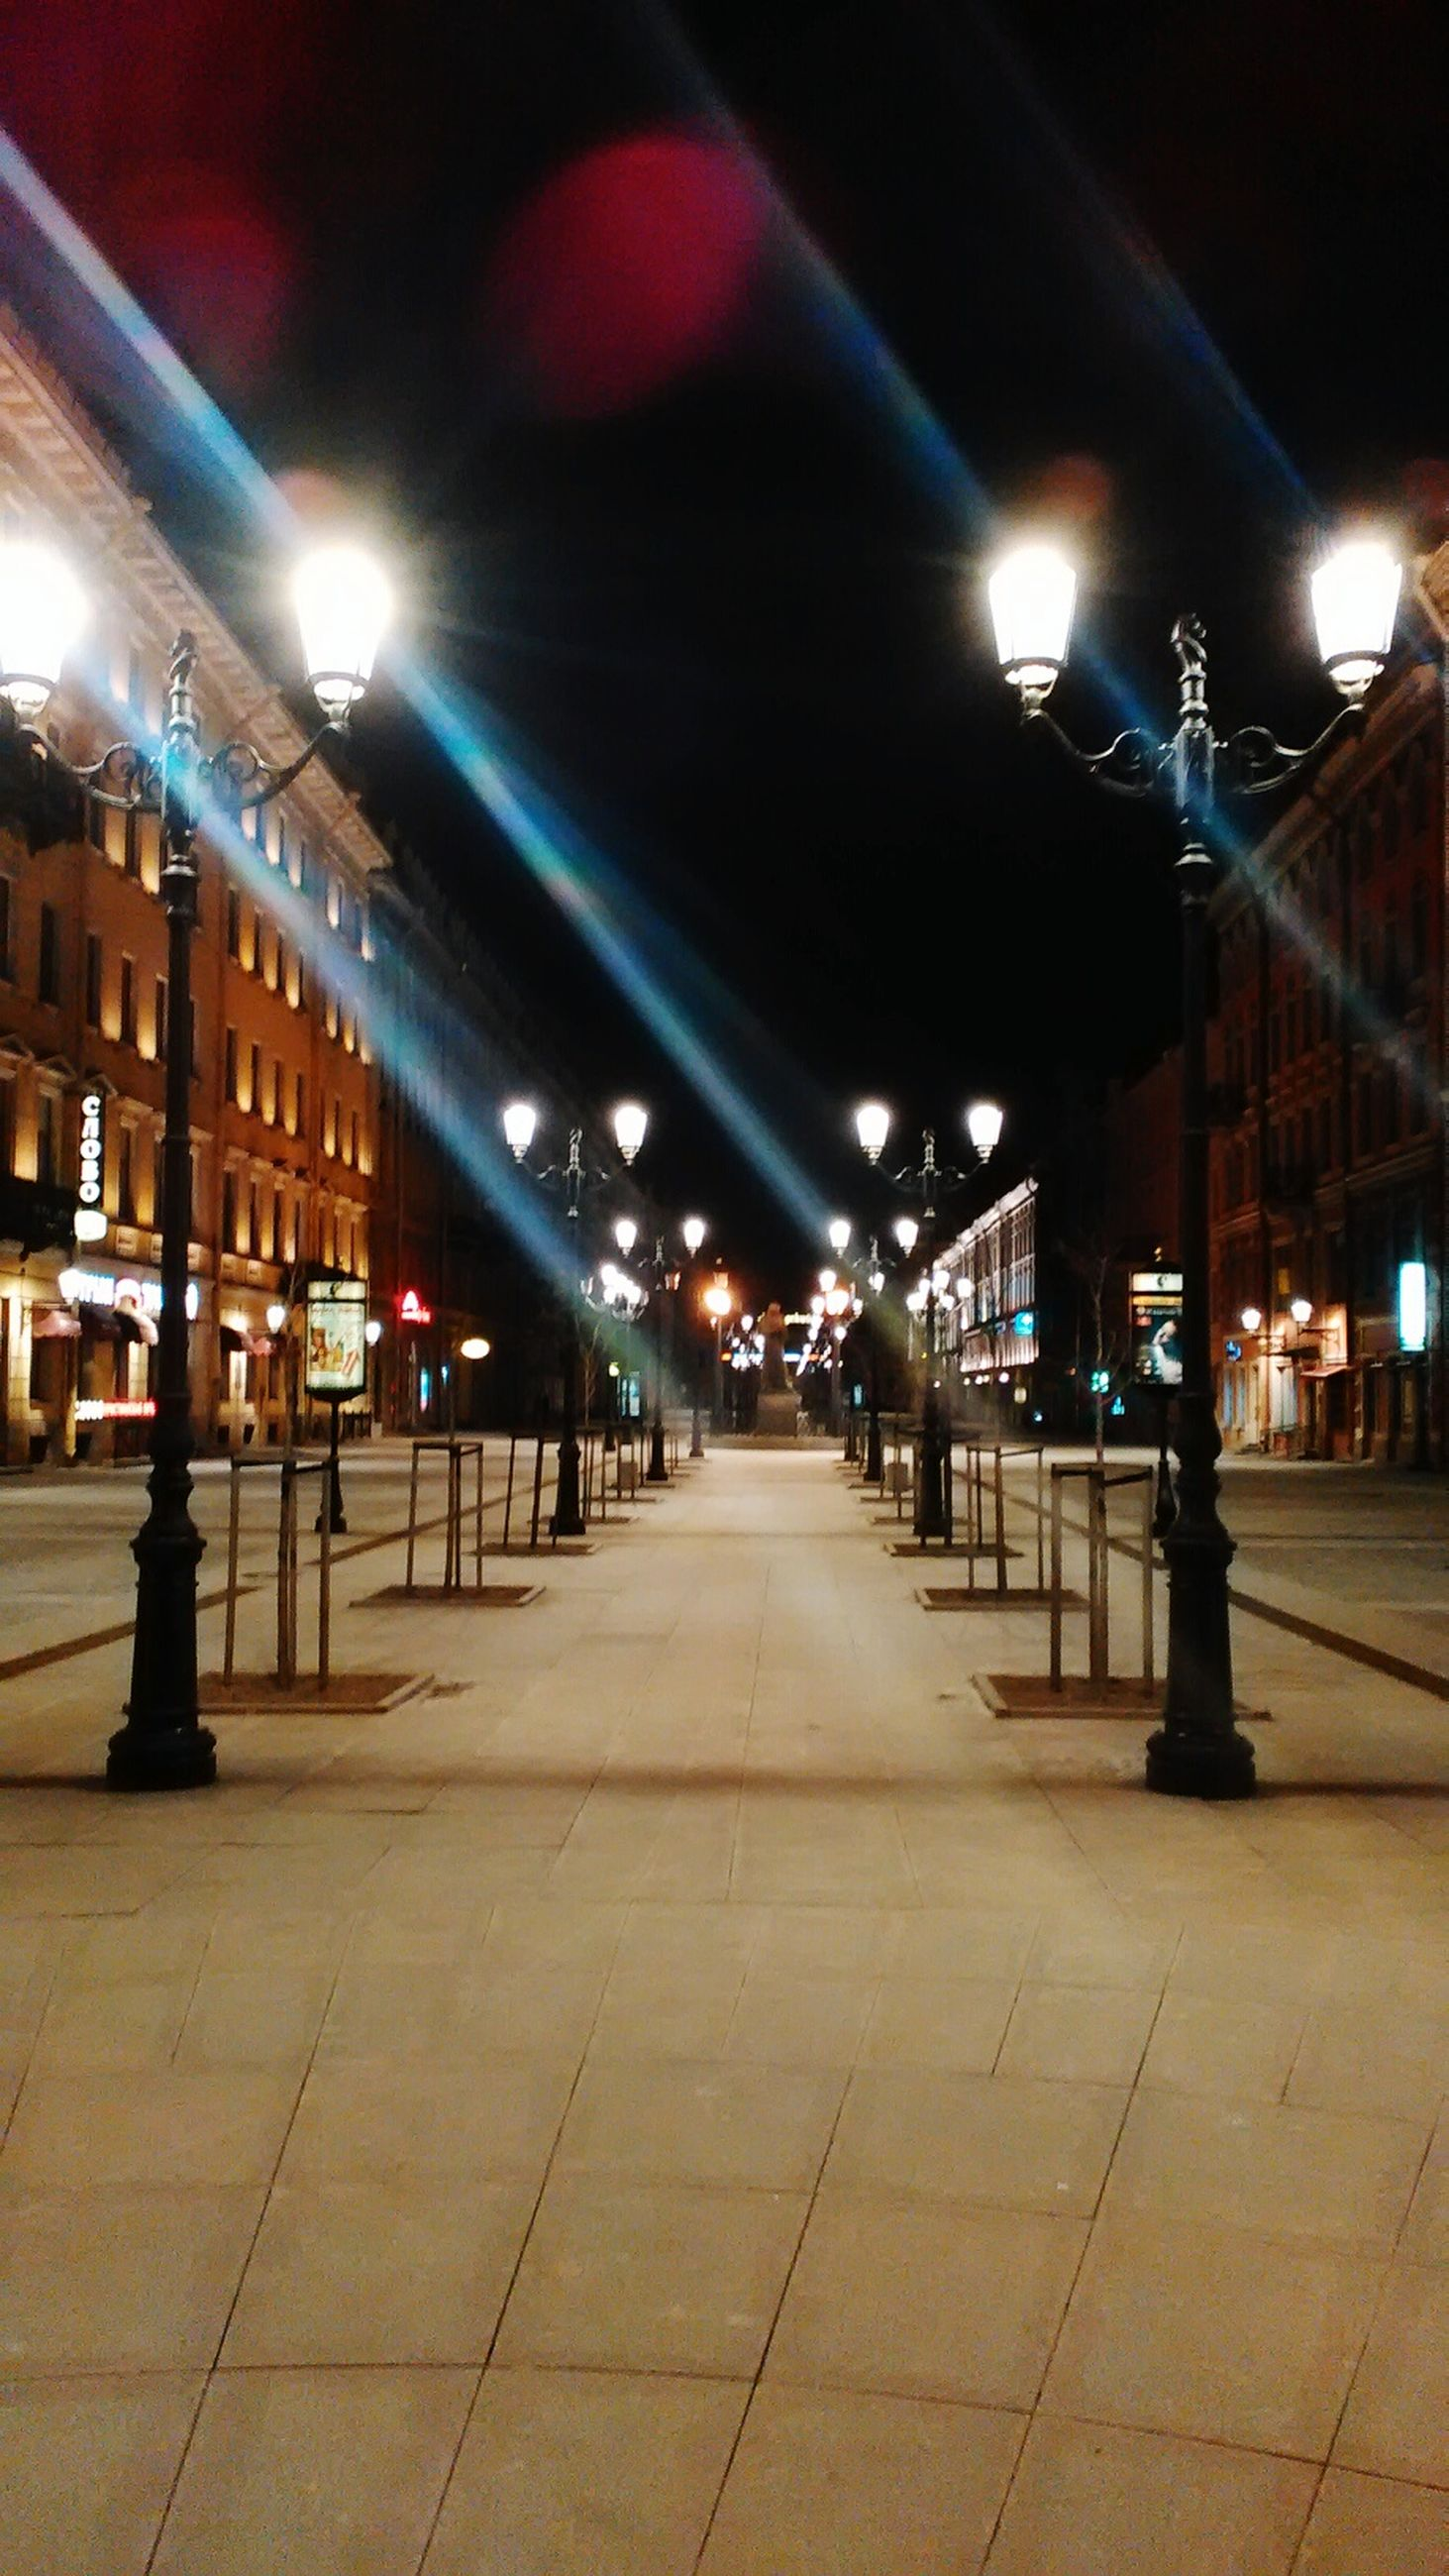 illuminated, night, built structure, architecture, lighting equipment, the way forward, street light, city, building exterior, transportation, diminishing perspective, incidental people, city life, empty, street, vanishing point, light - natural phenomenon, electric light, in a row, outdoors